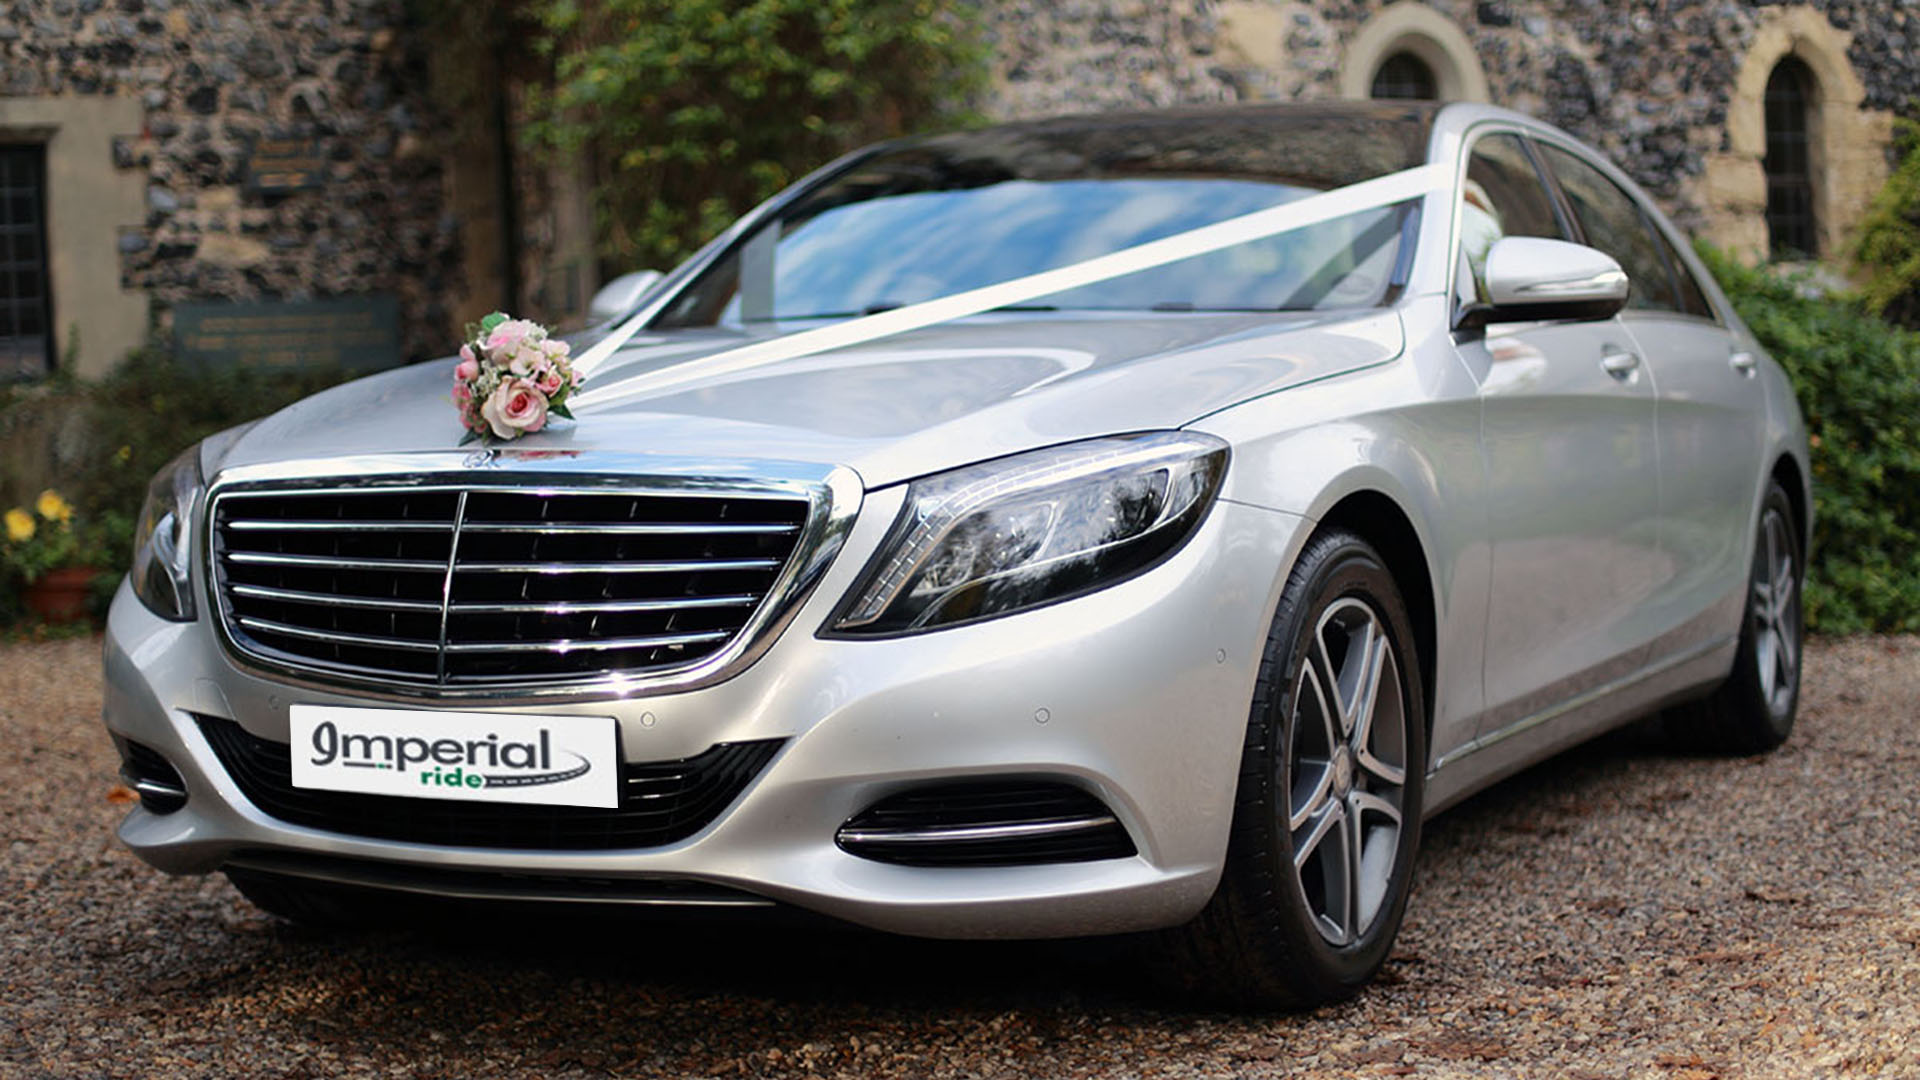 s-class-wedding-hire-in-harrow